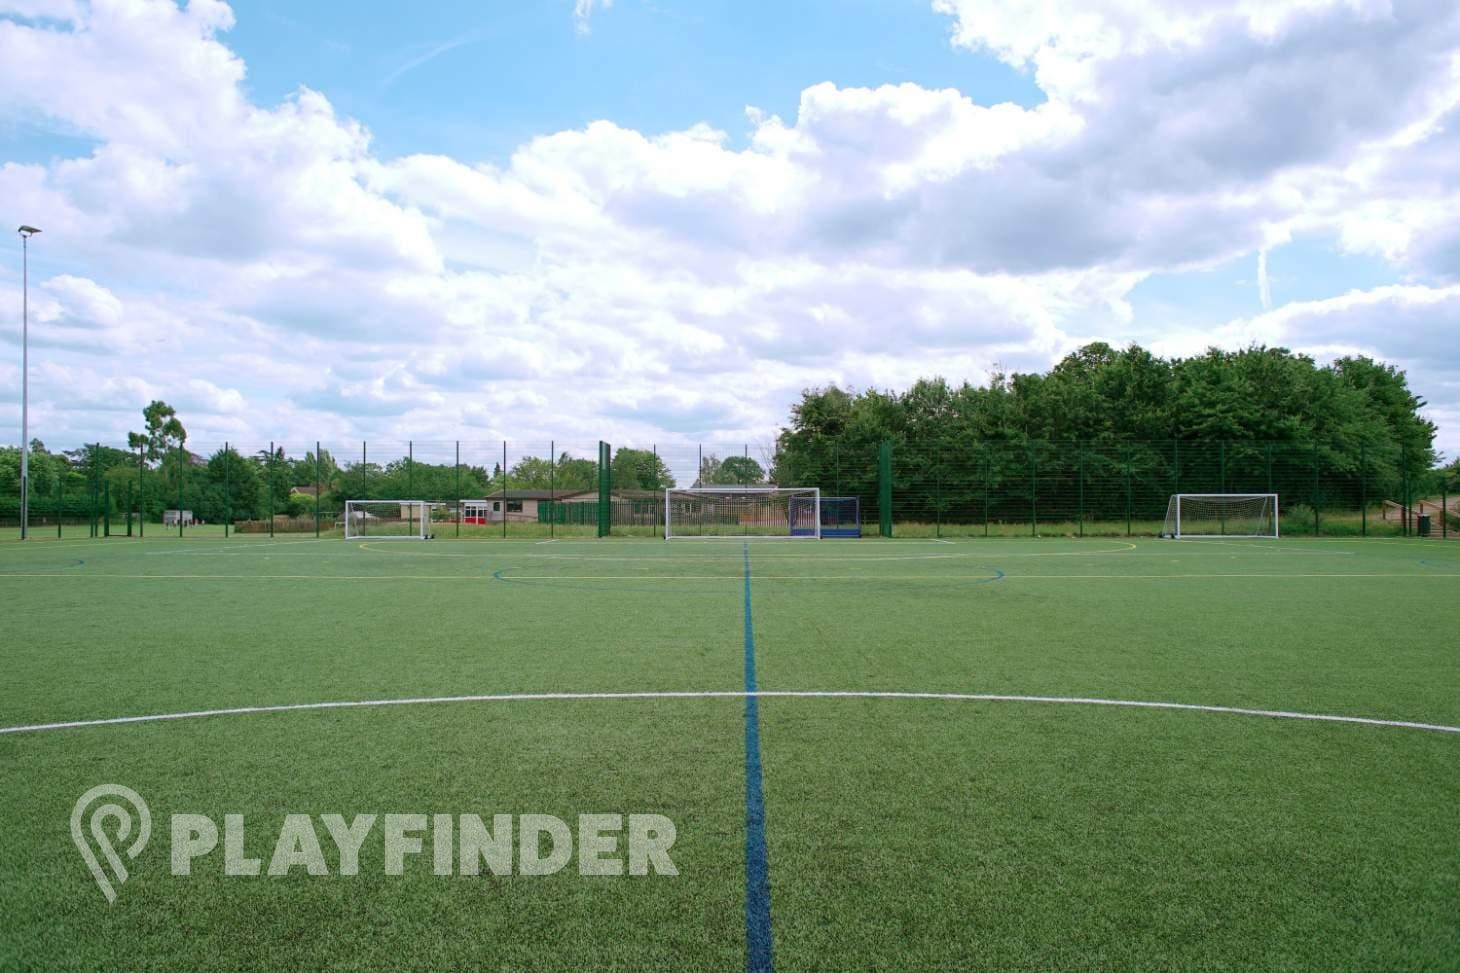 Furze Platt Leisure Centre 11 a side | 3G Astroturf football pitch